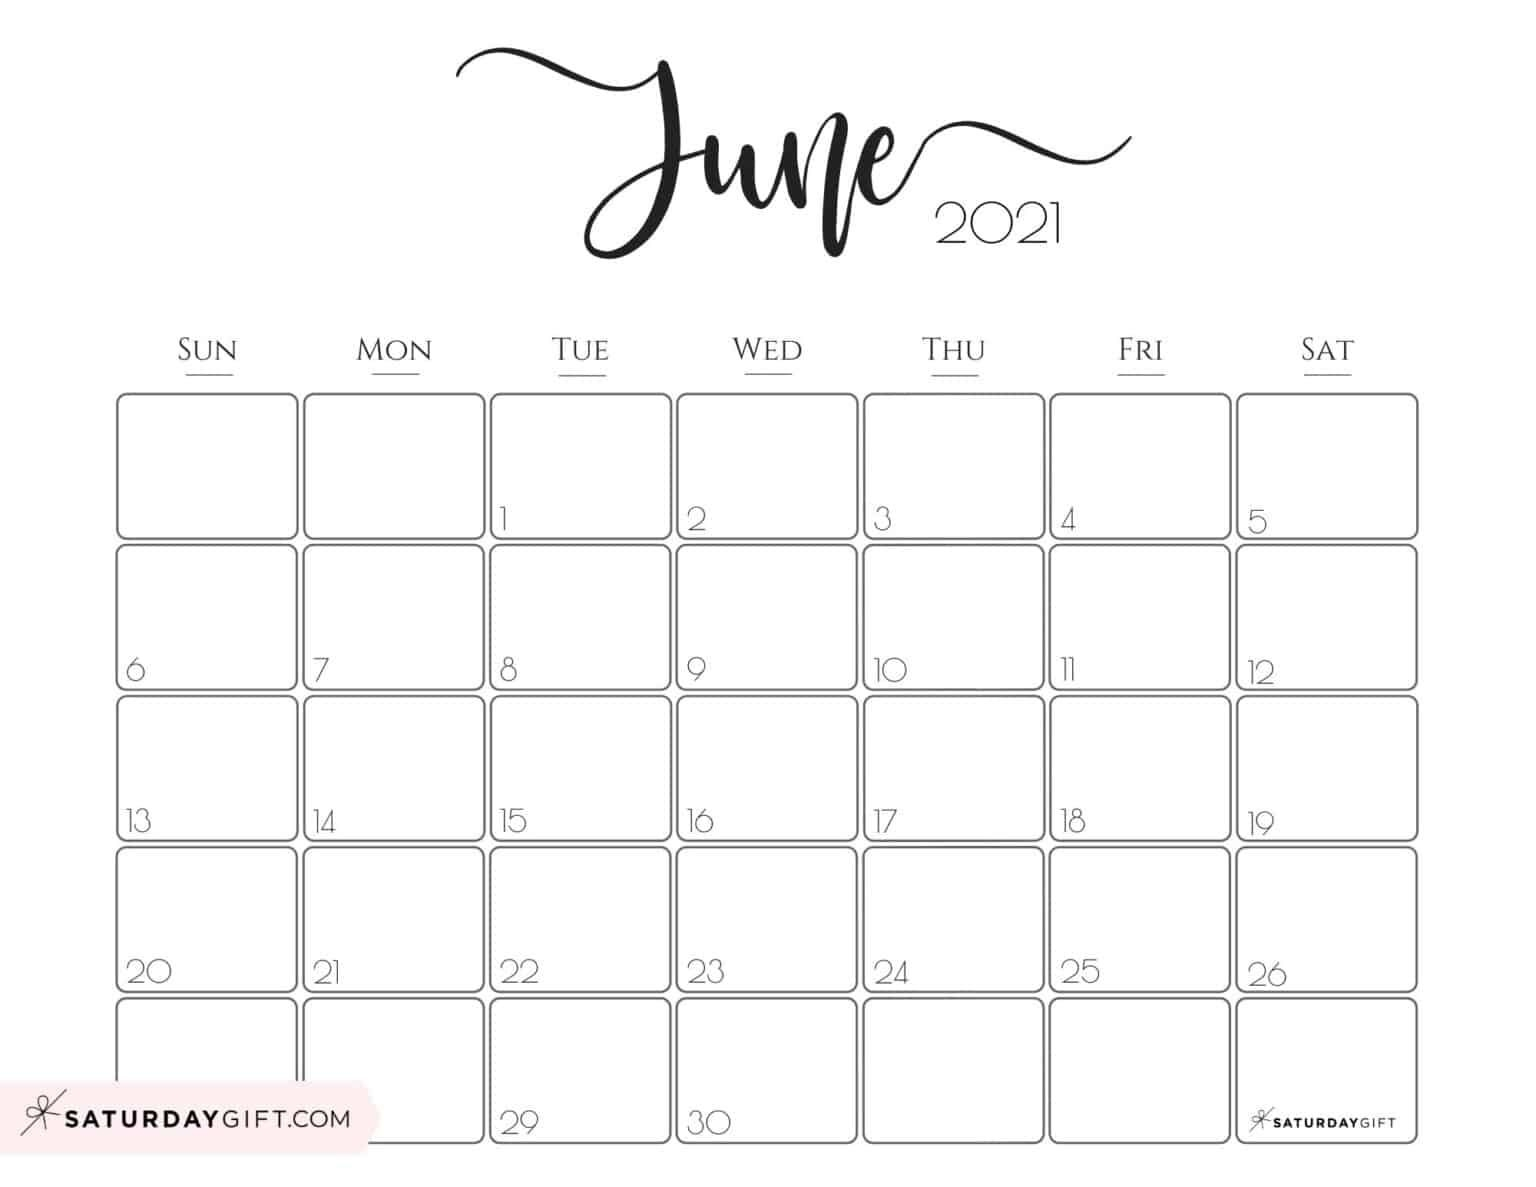 Elegant 2021 Calendarsaturdaygift - Pretty Printable